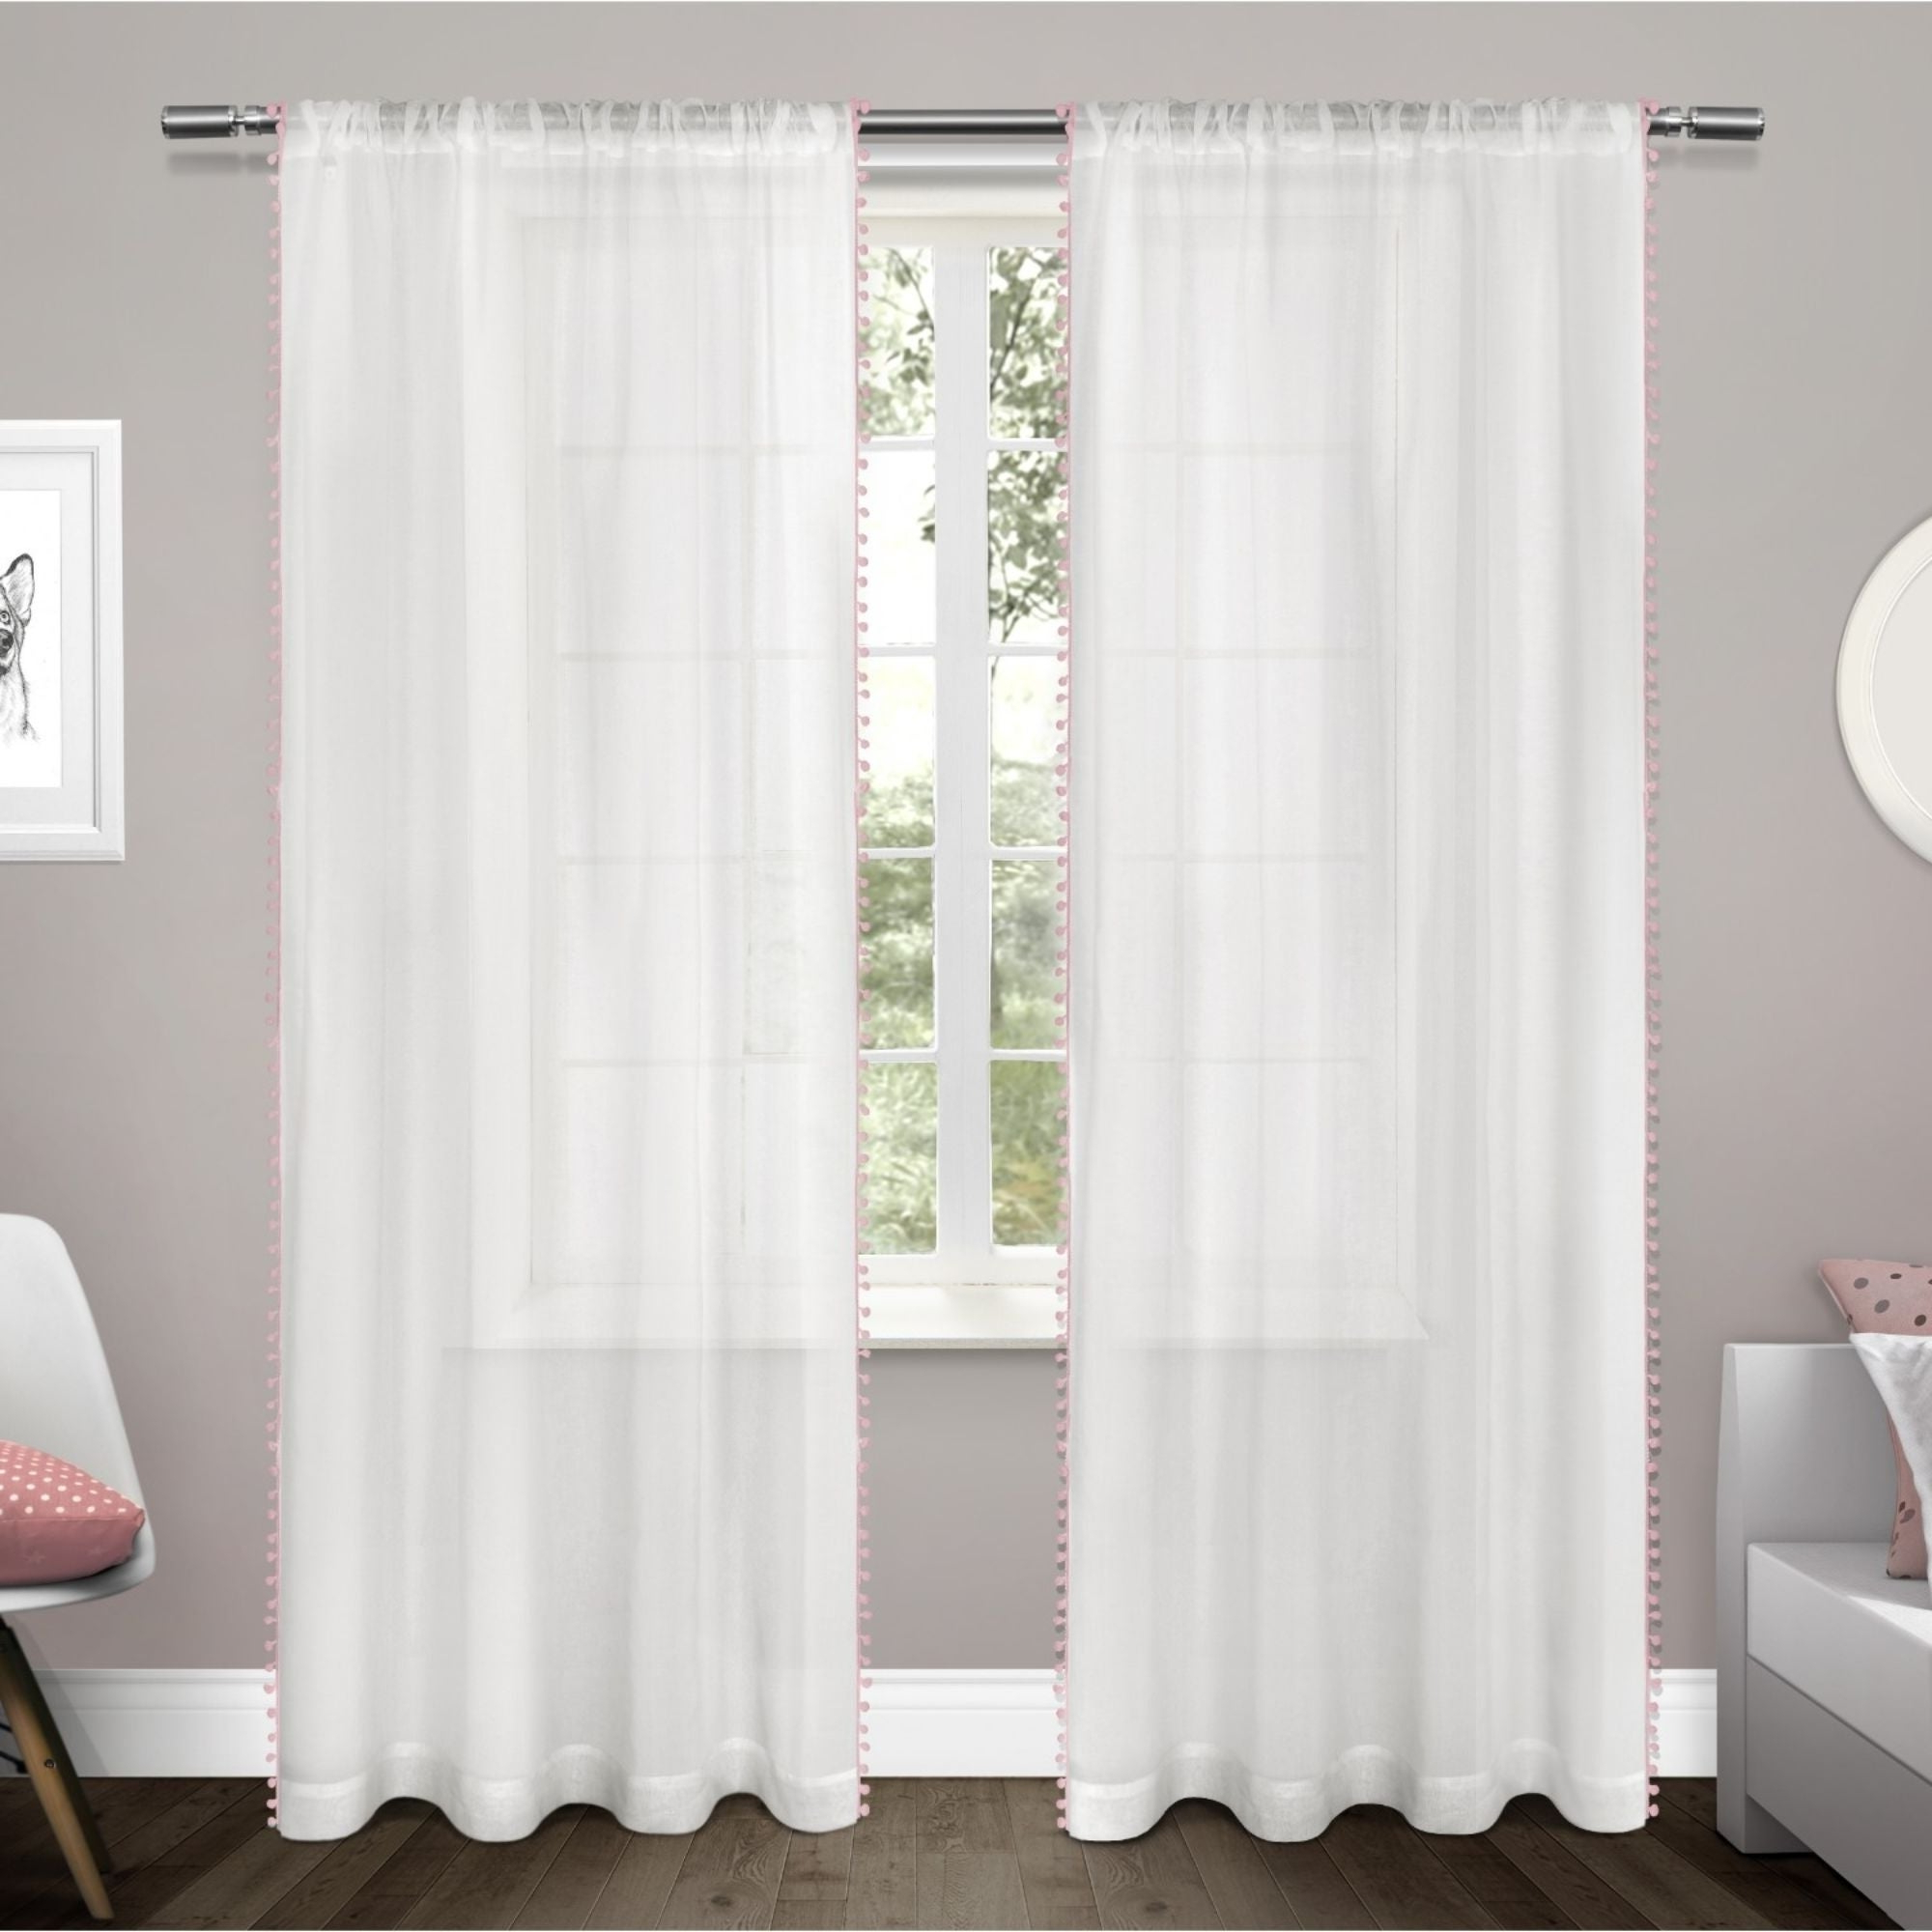 Most Recently Released Ati Home Pom Pom Applique Sheer Rod Pocket Top Curtain Panel Pair With Tassels Applique Sheer Rod Pocket Top Curtain Panel Pairs (View 9 of 20)